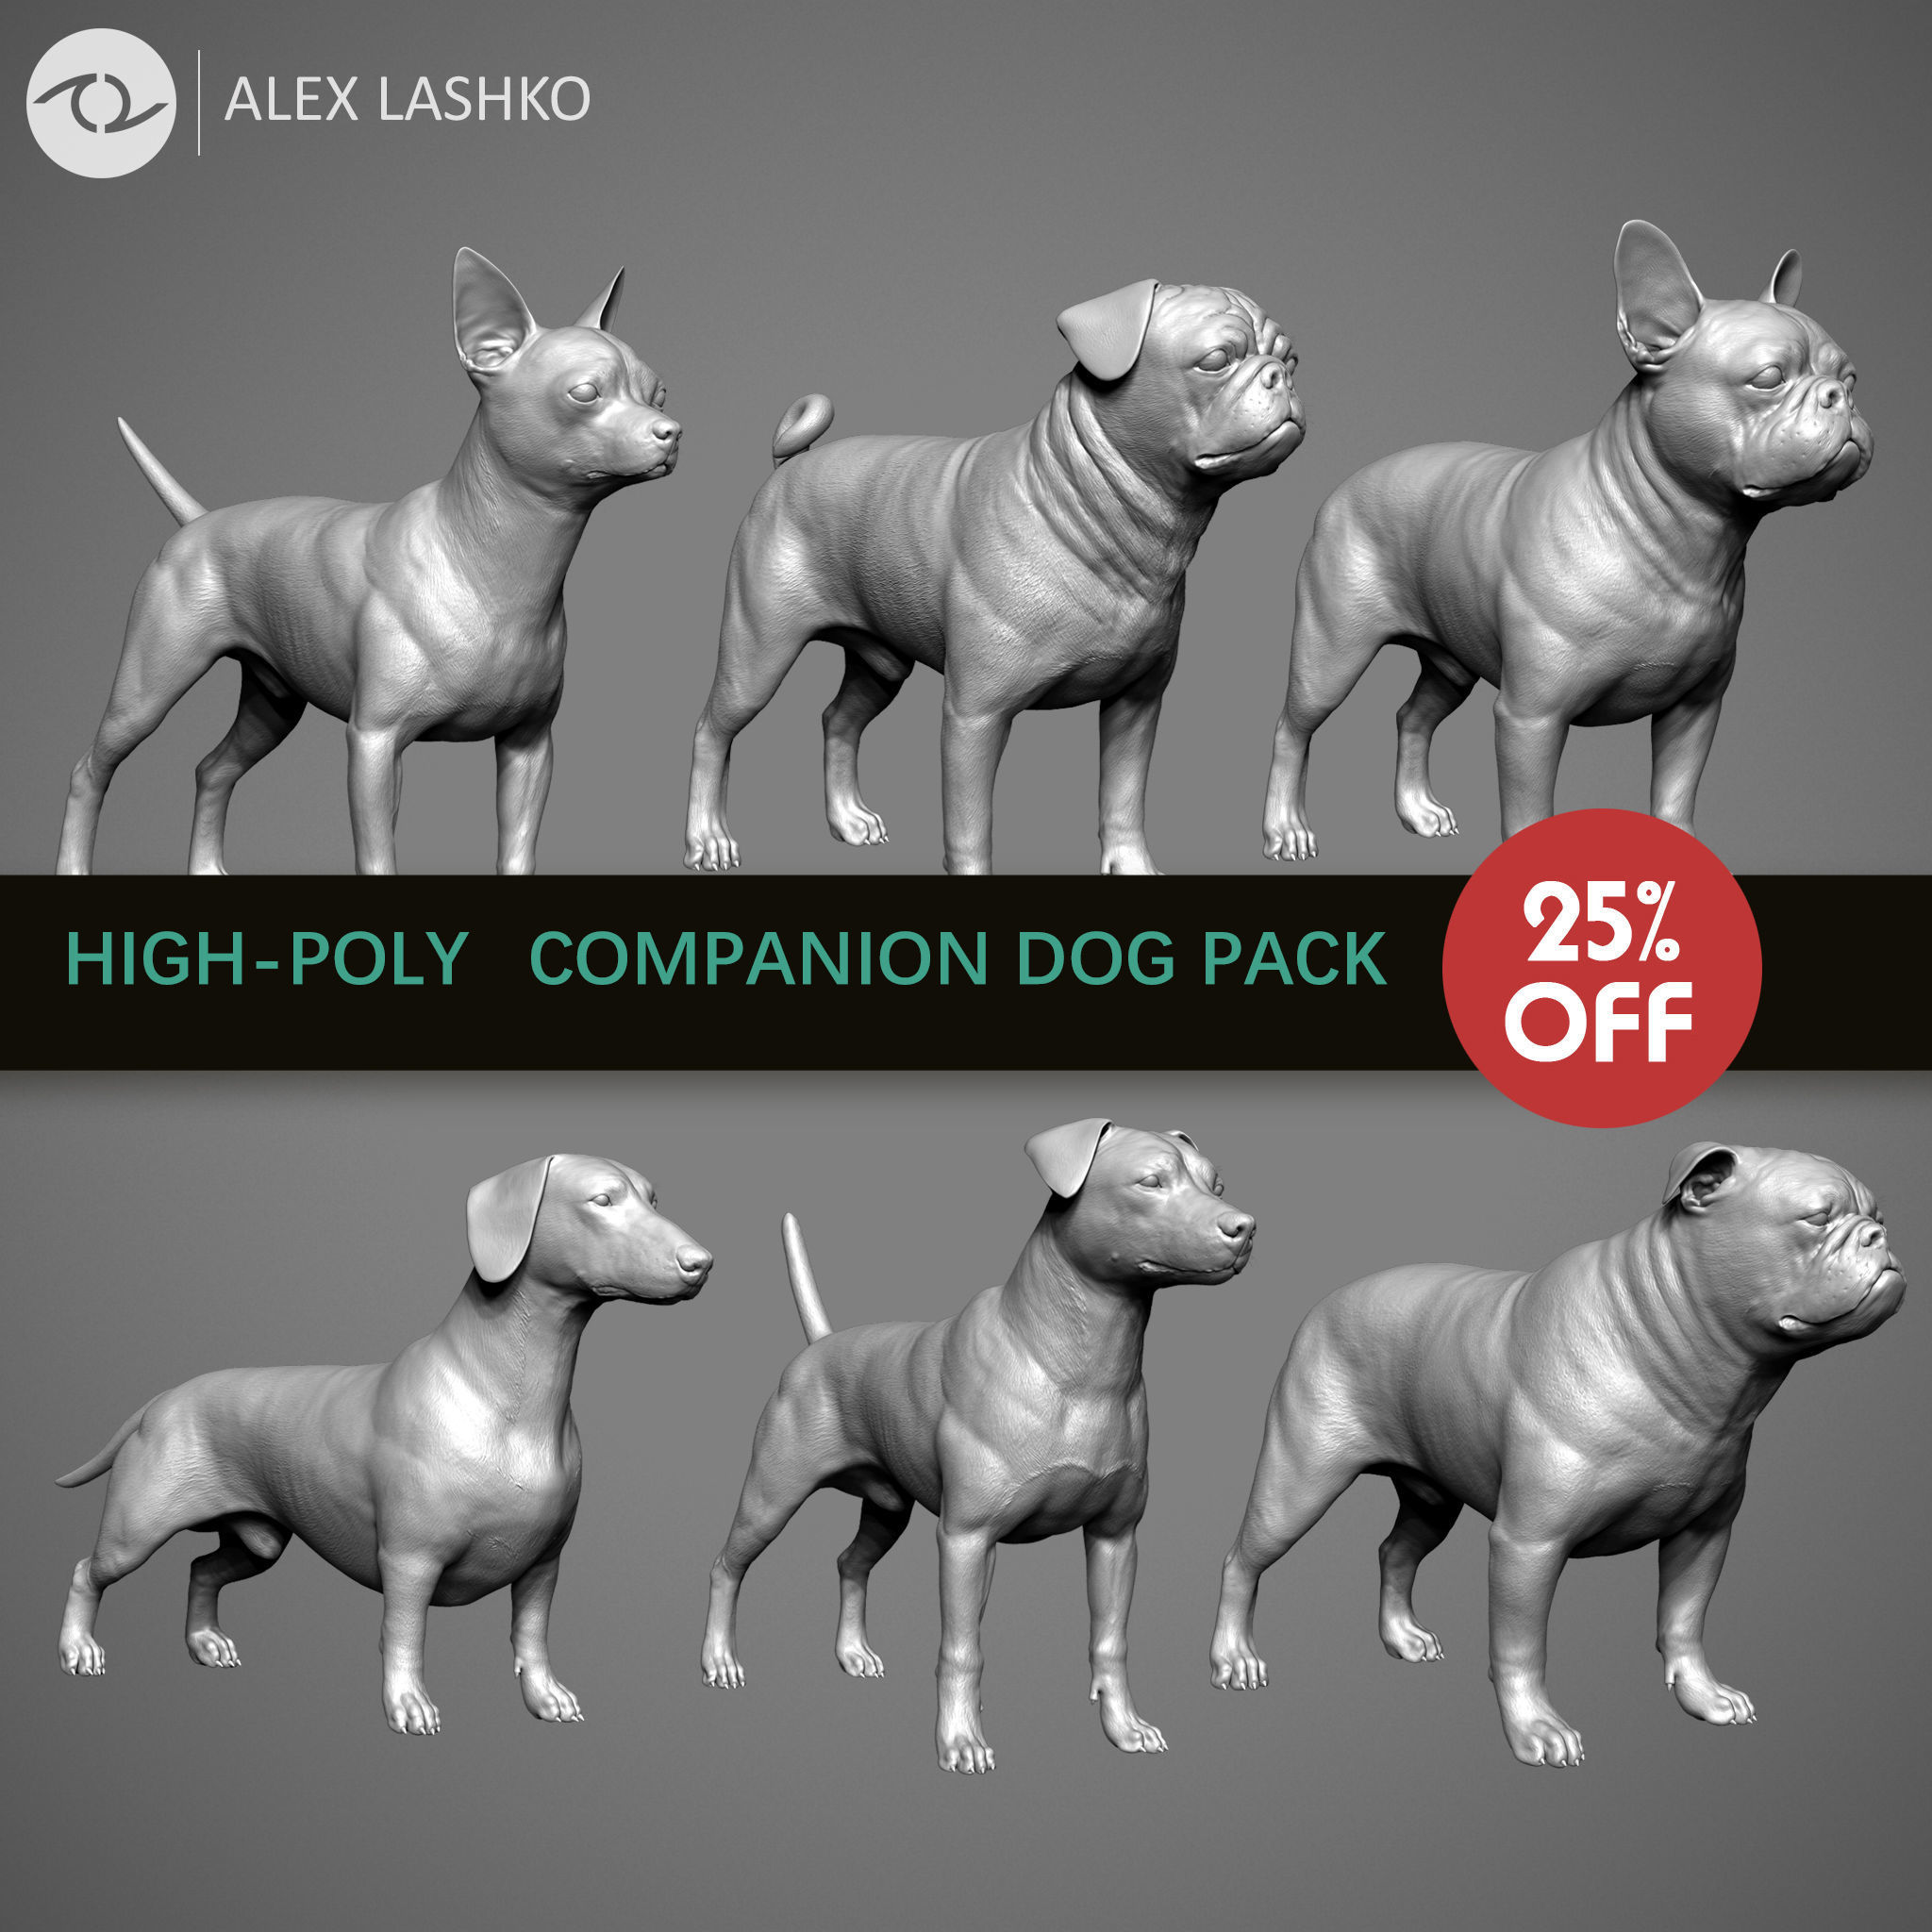 Companion Dog Pack High-Poly Collection